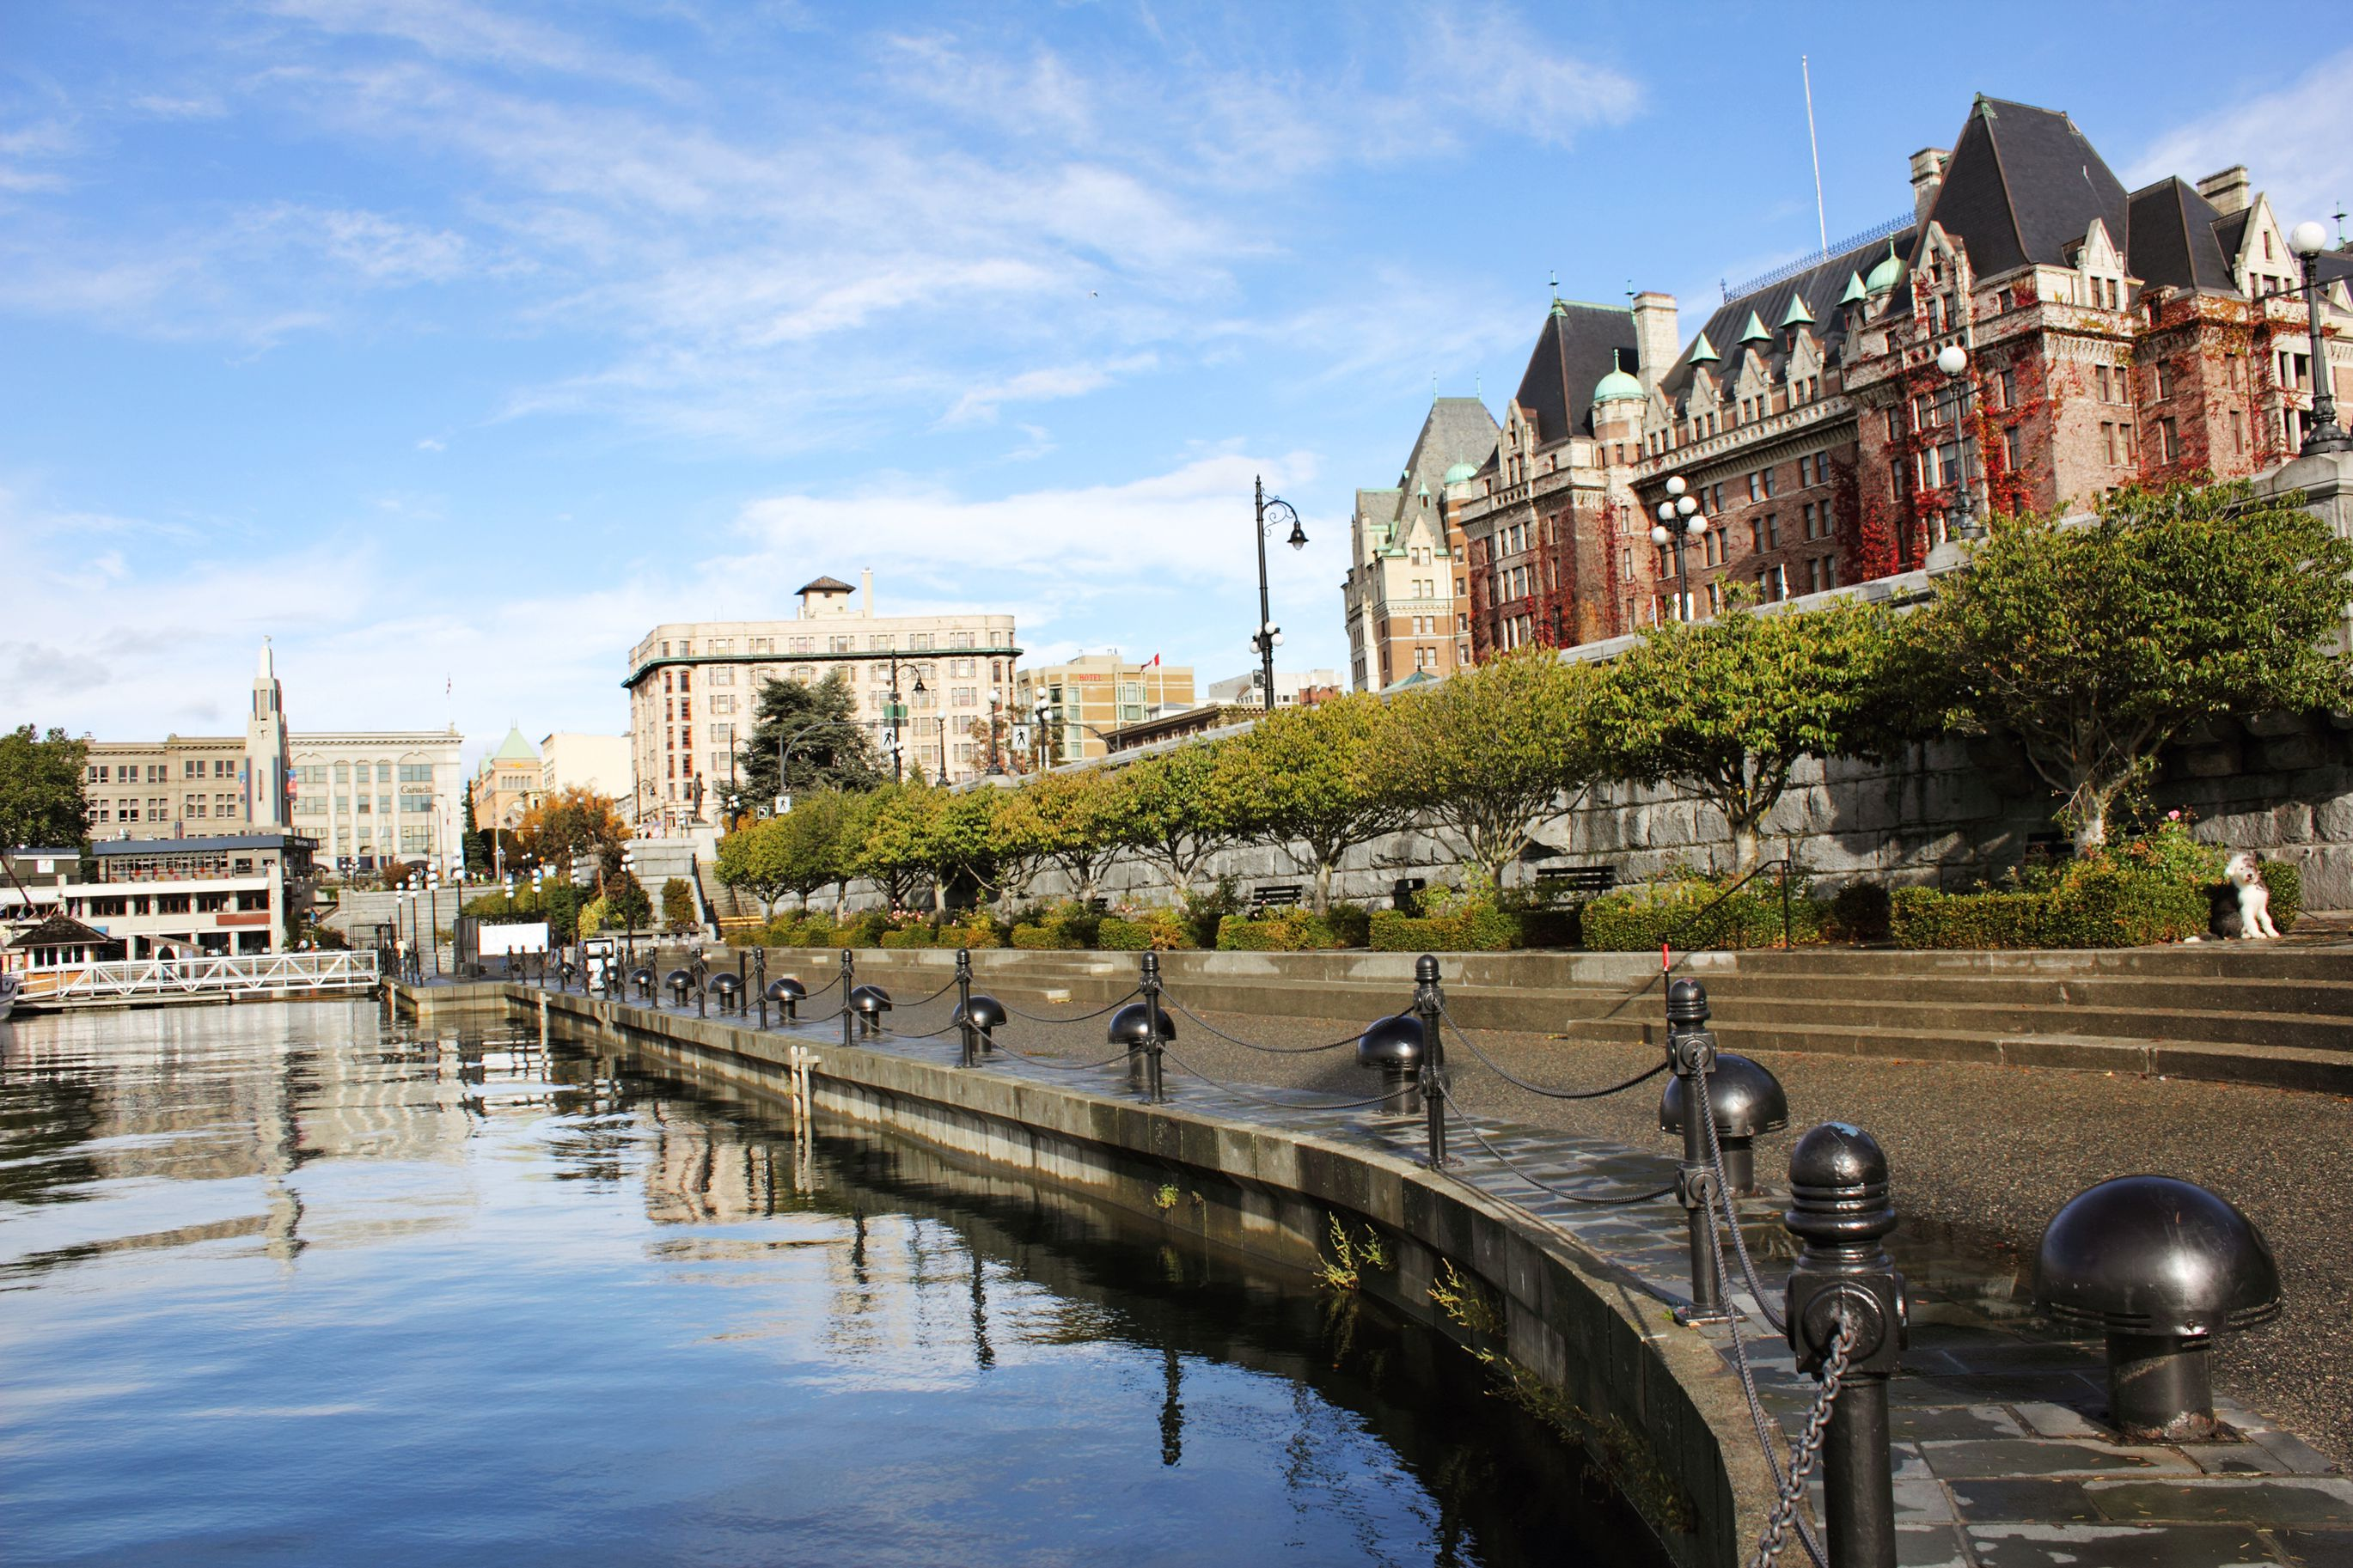 View of the city by the causeway in Victoria, Canada.